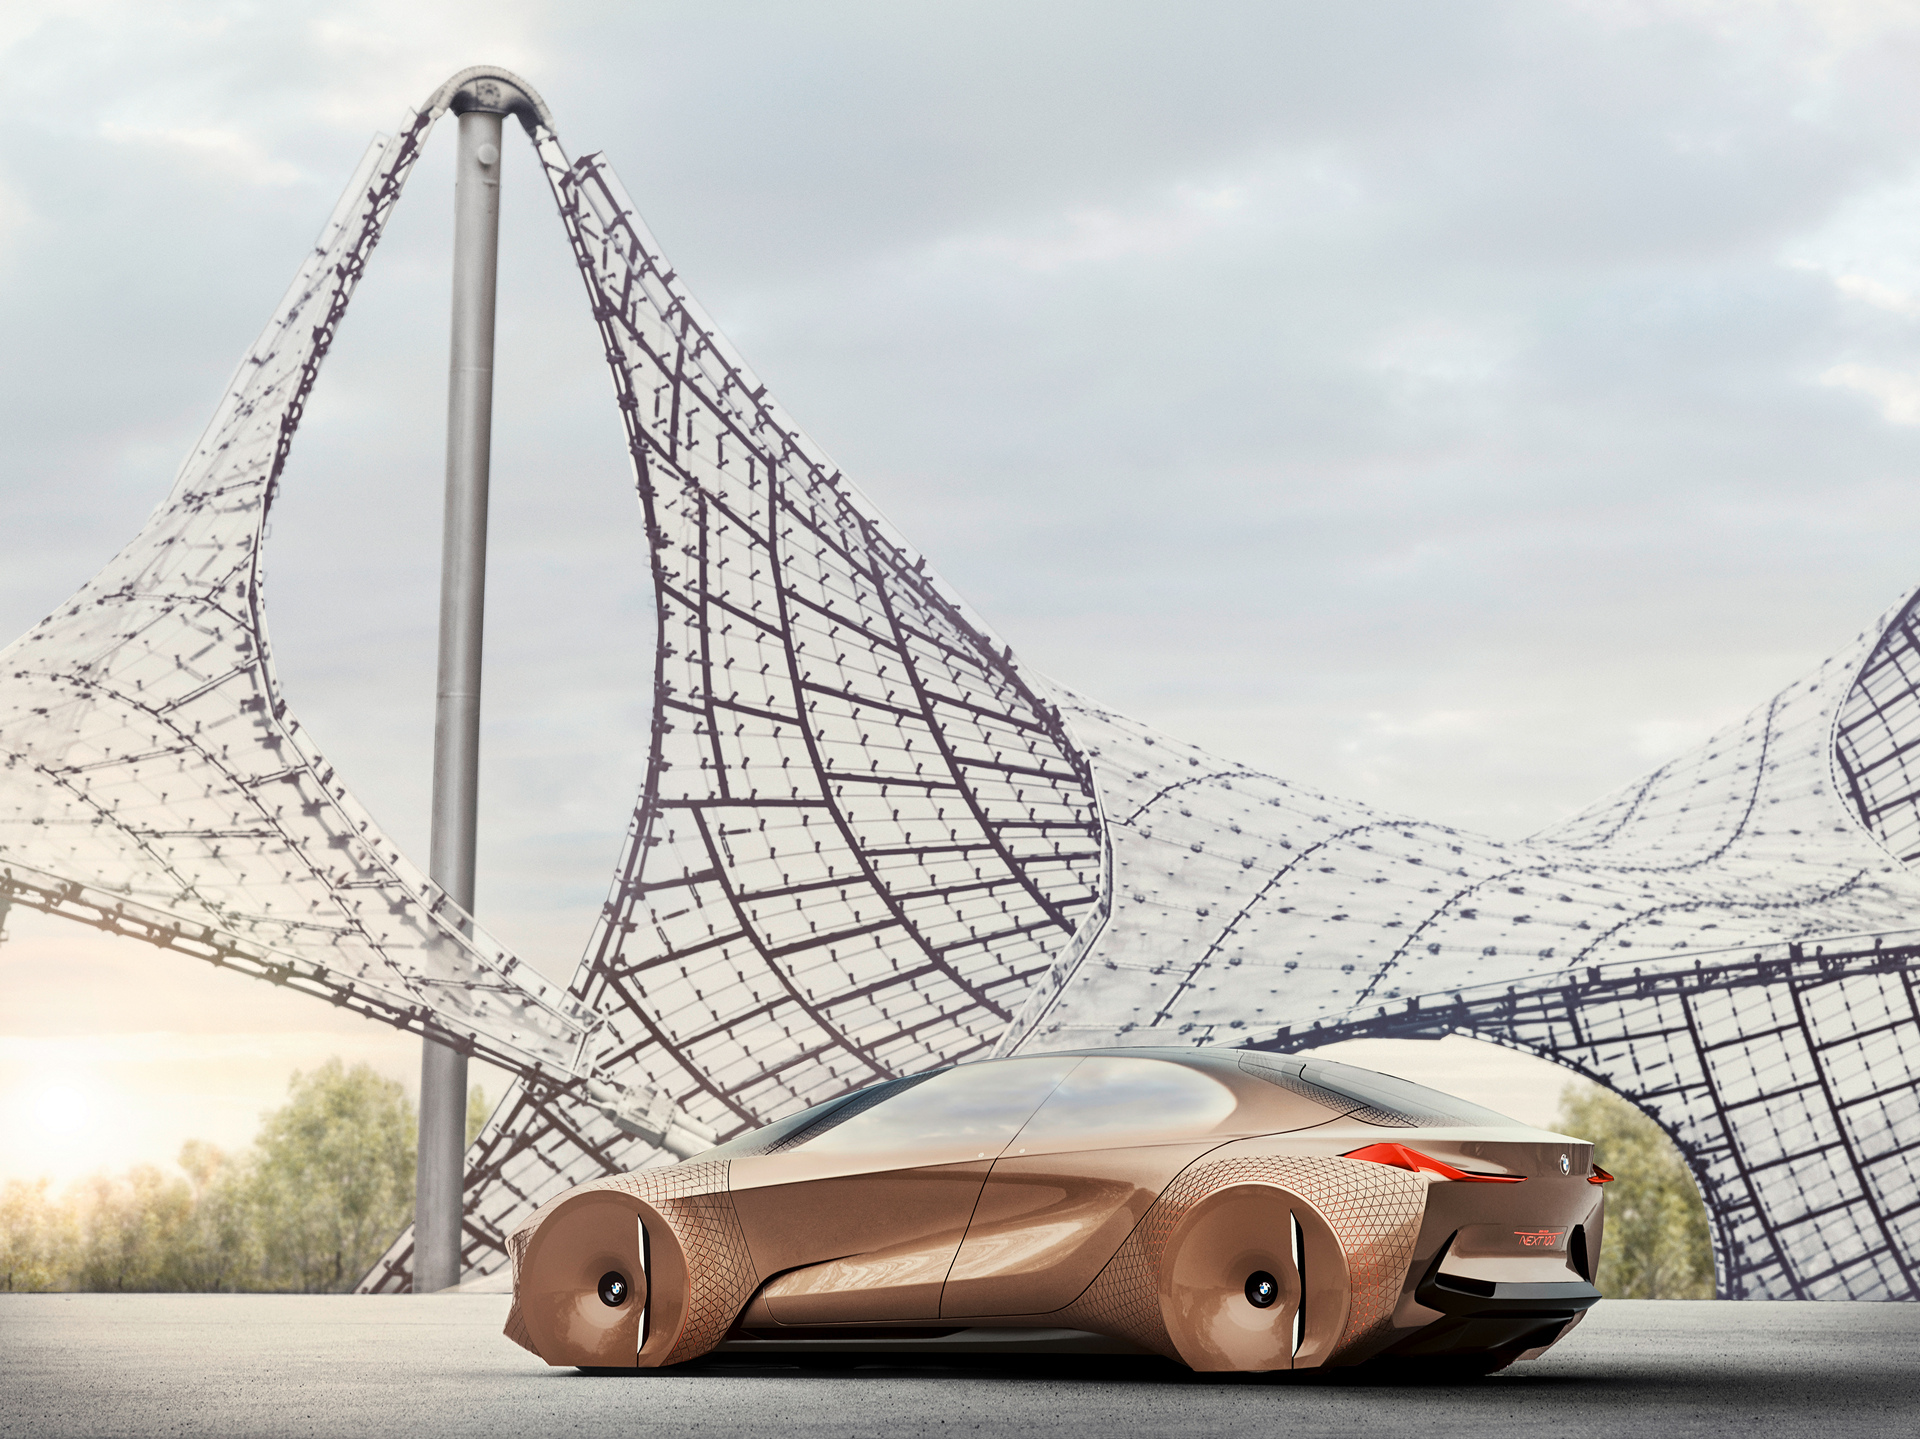 BMW VISION NEXT 100 © BMW AG